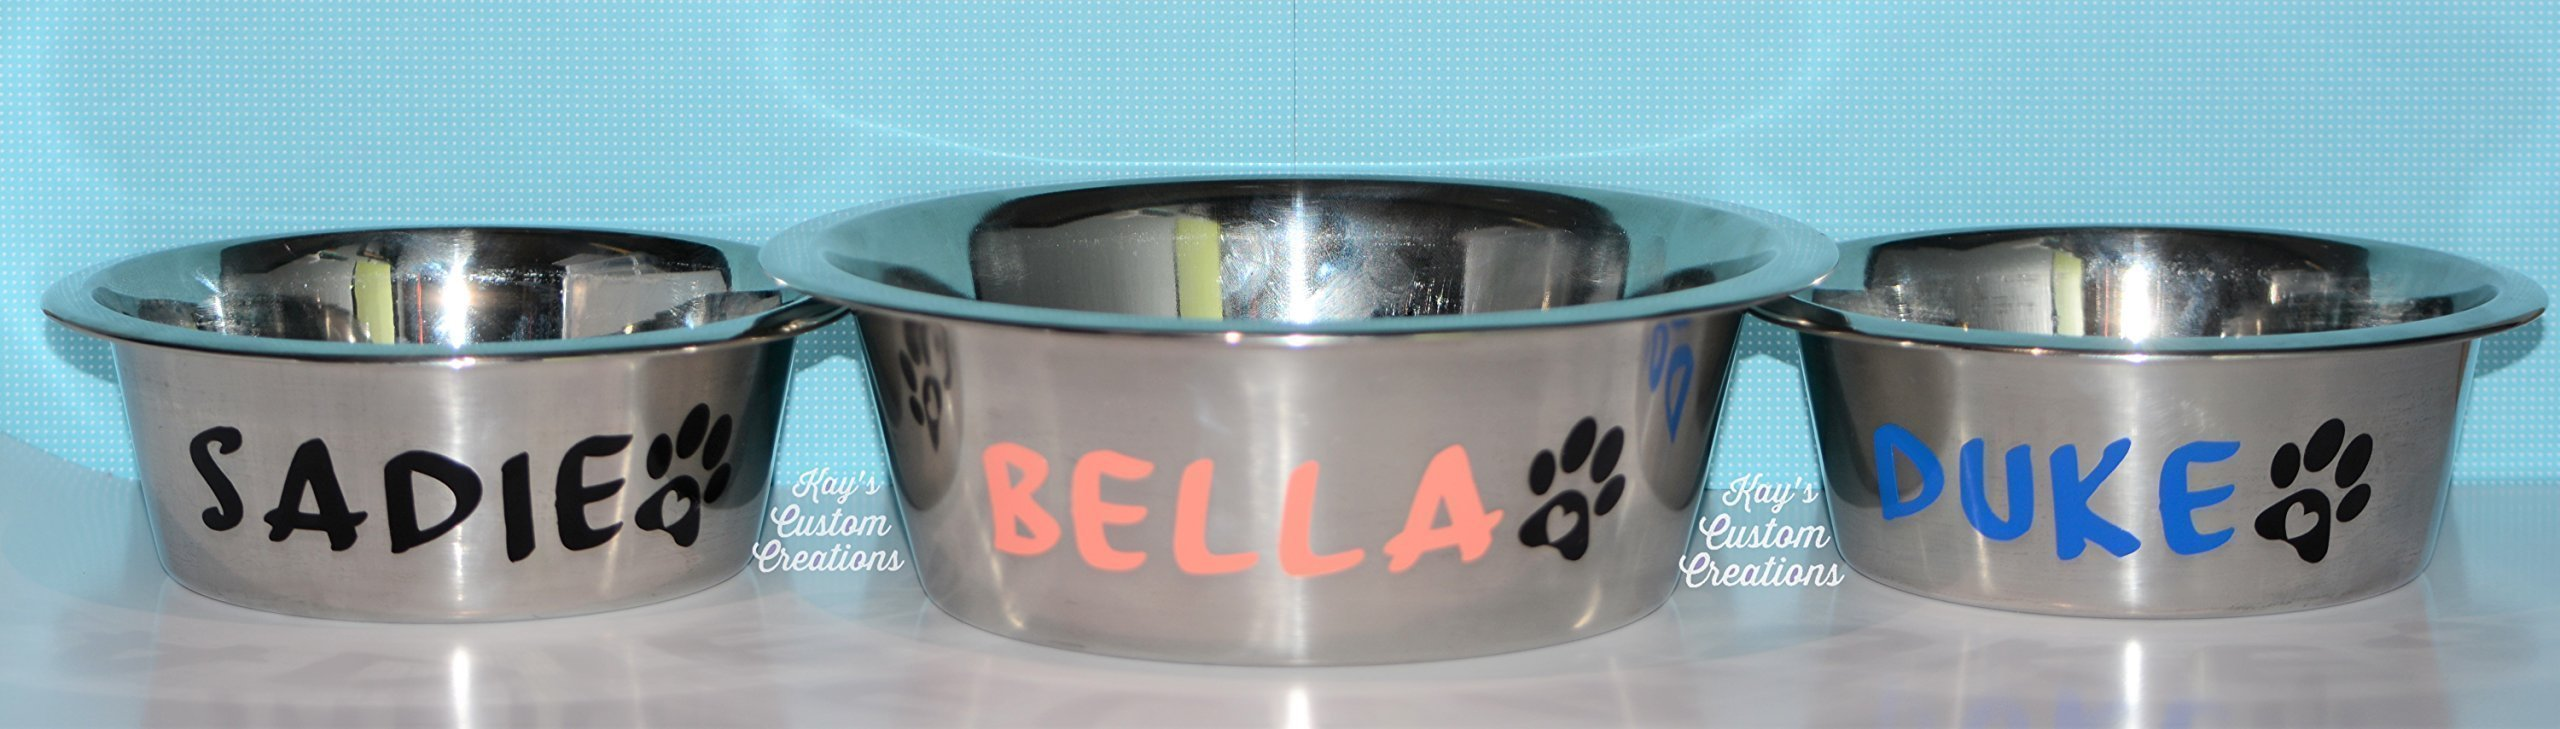 Personalized stainless steel pet bowls (dog, cat, etc)